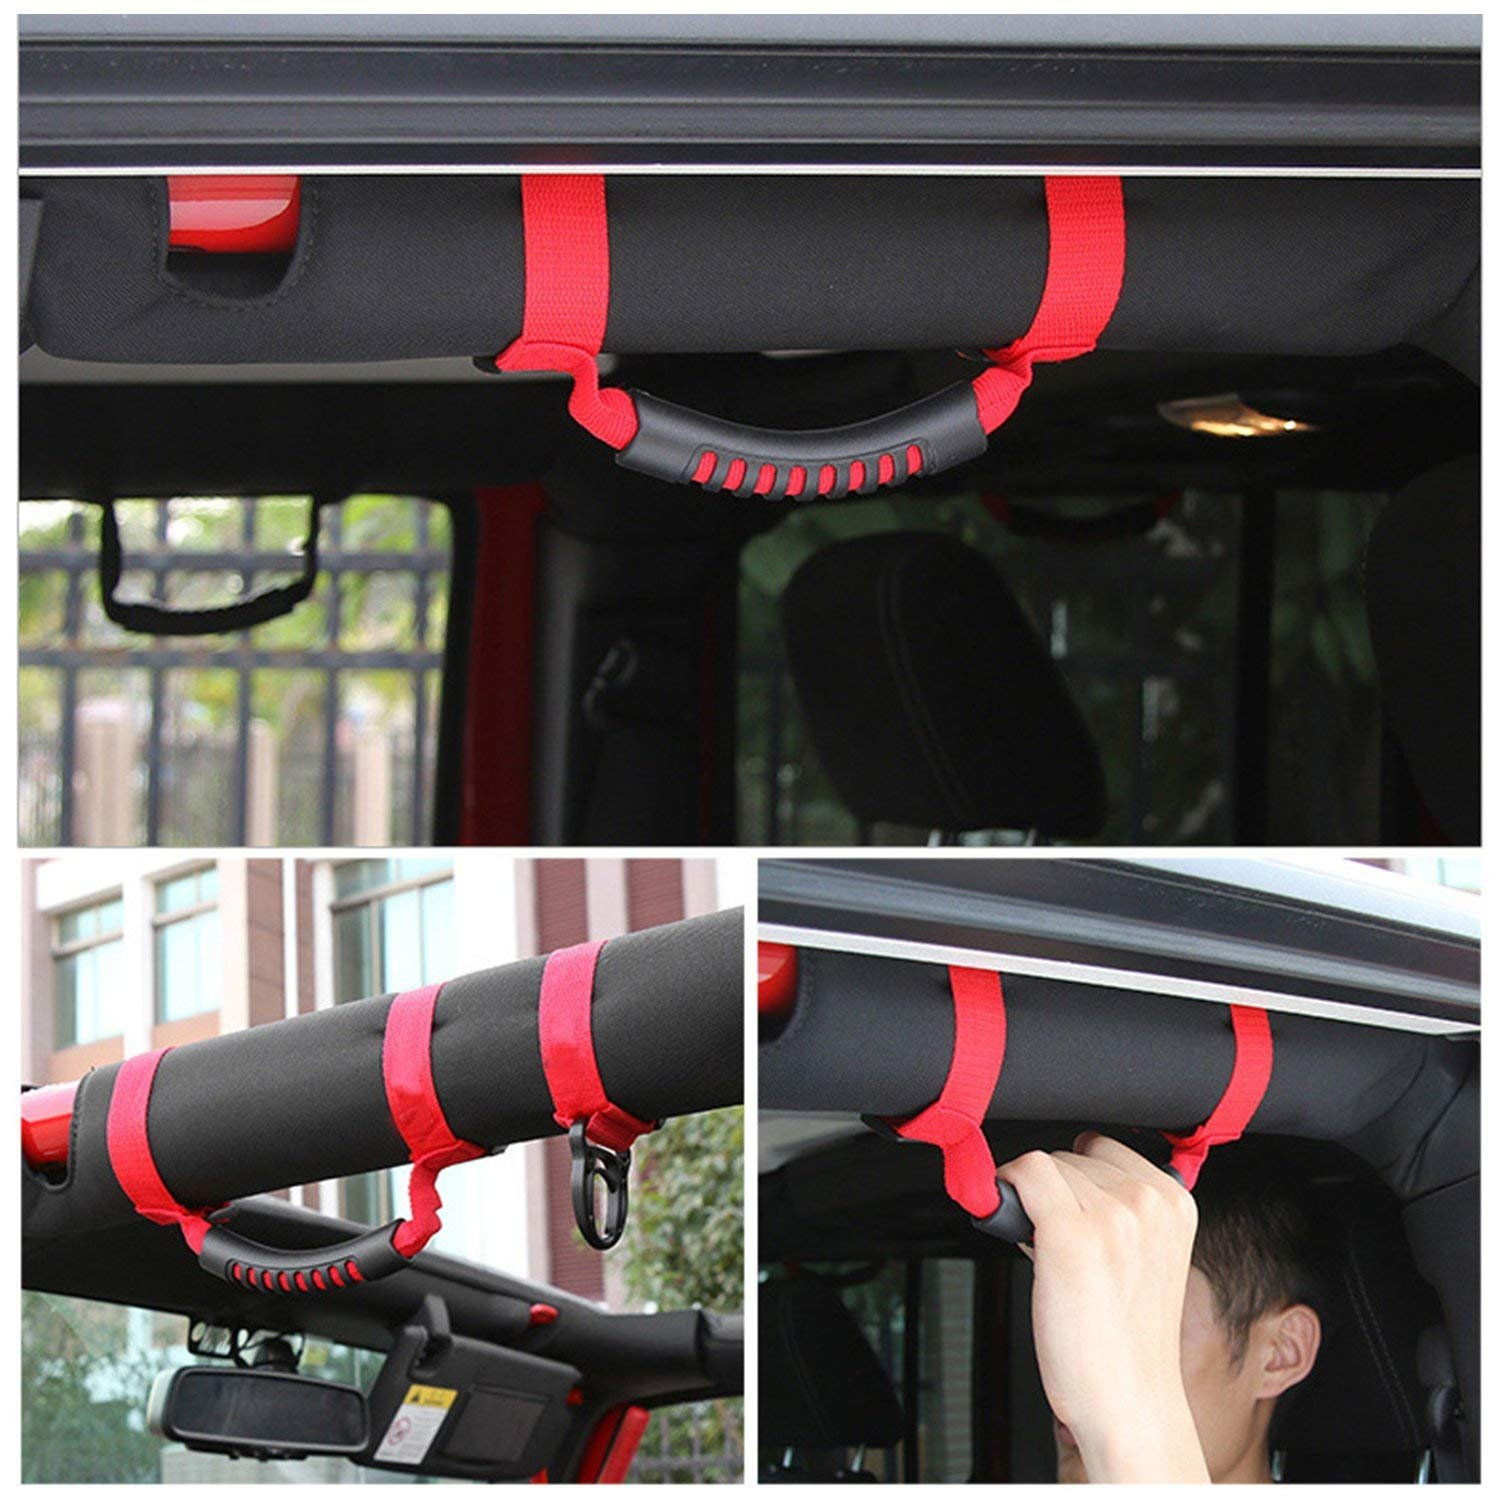 Jenaka 4 pack-Red Roll Bar Heavy Duty Grab Handle with Adjustable Straps for Jeep Wrangler YJ TJ JK JL Sports Sahara Freedom Rubicon X Unlimited 1955-2018